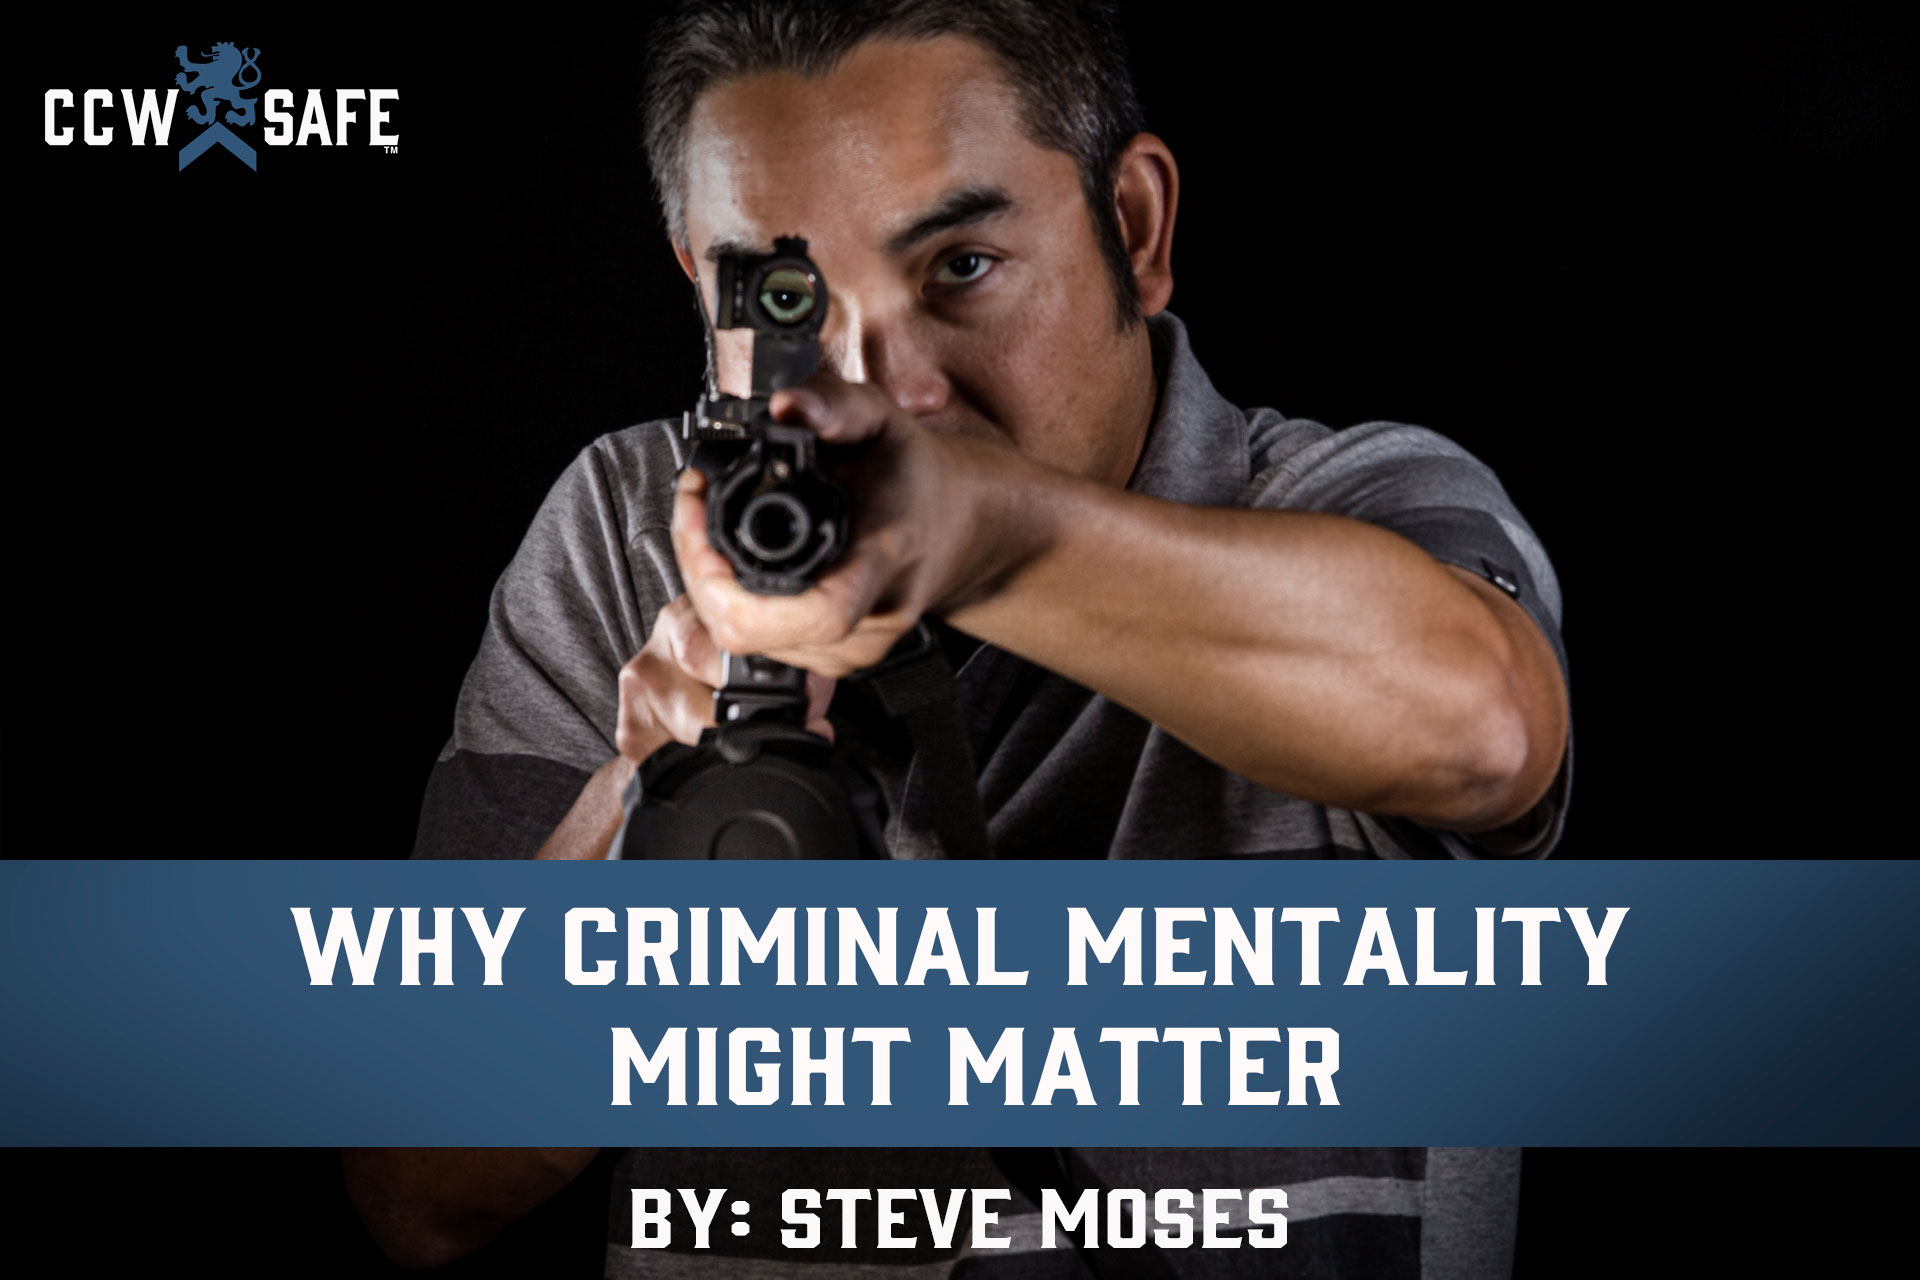 WHY CRIMINAL MENTALITY MIGHT MATTER